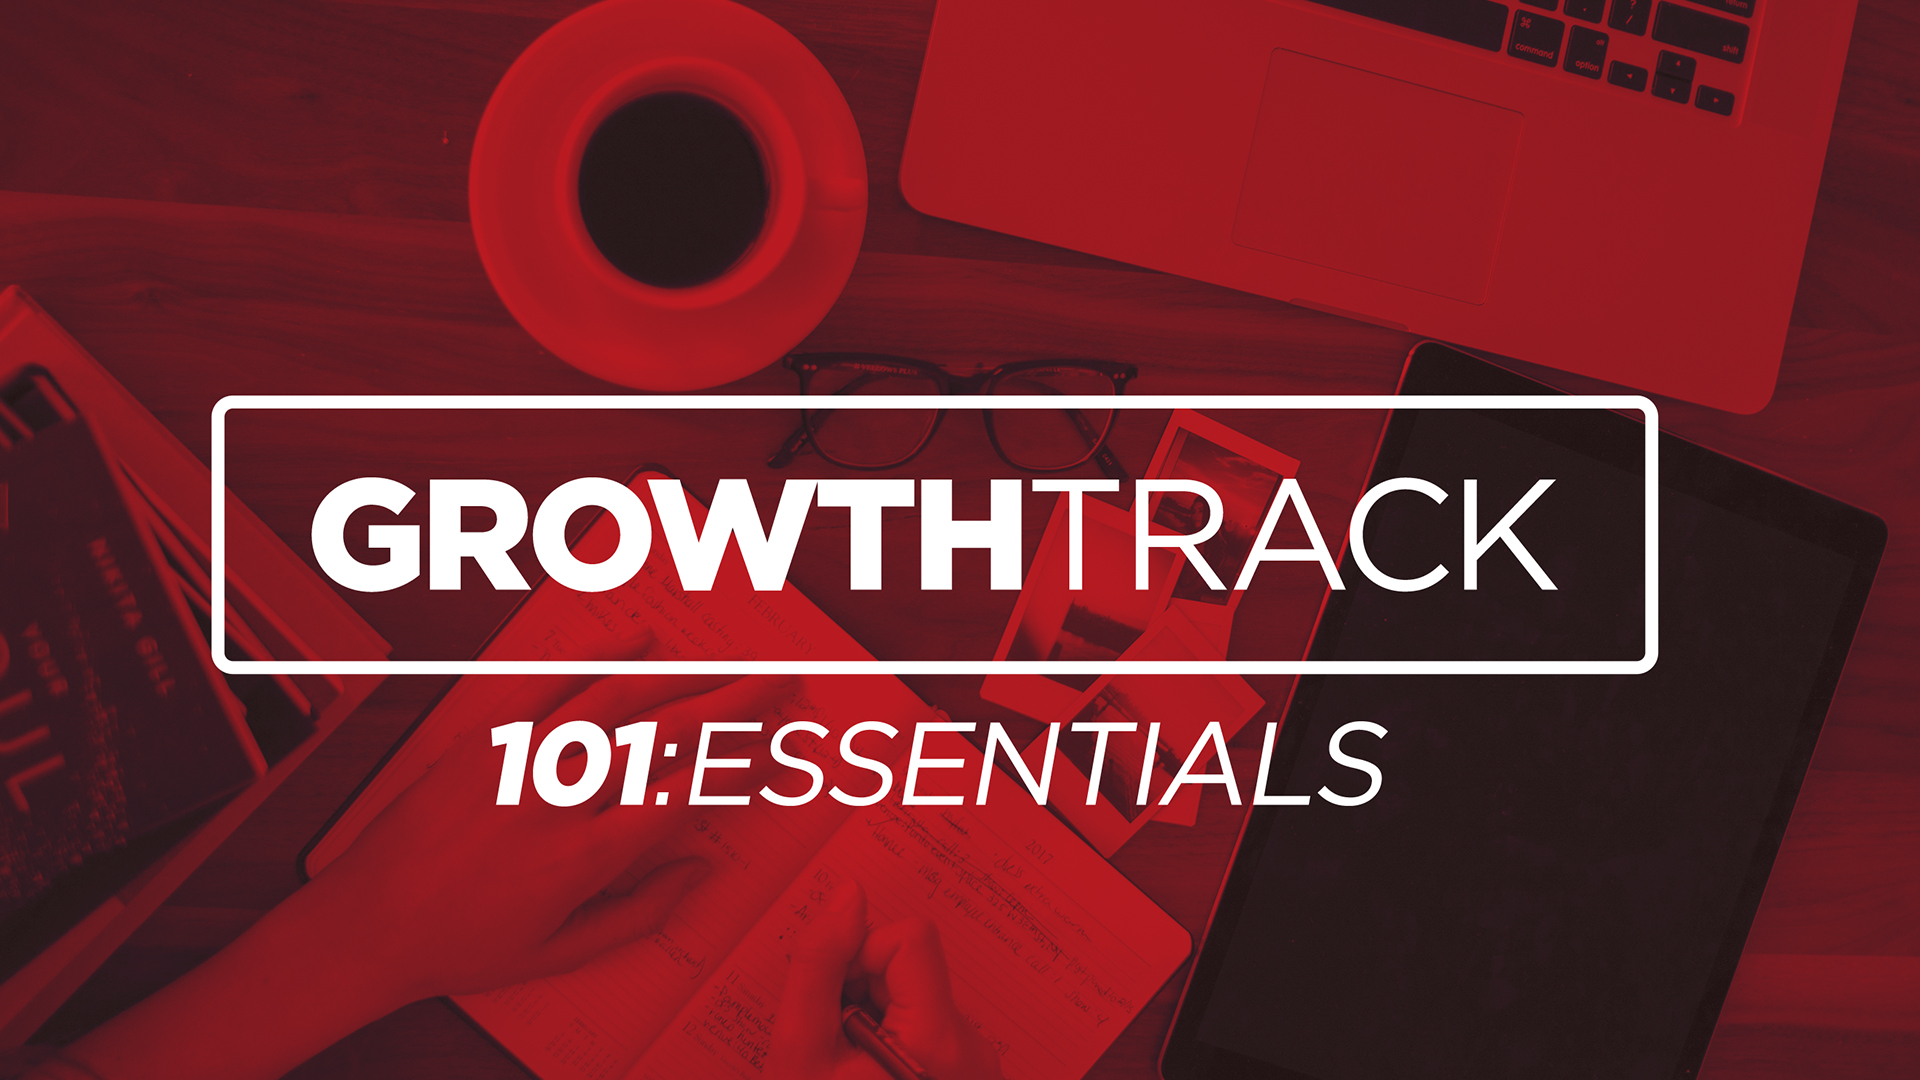 Step ONE - Essentials - Step One of Growth Track is all about knowing God. Get equipped to become fully-devoted follower of Jesus Christ. Step Next Step: Salvation, Water Baptism, Get in a Life Group